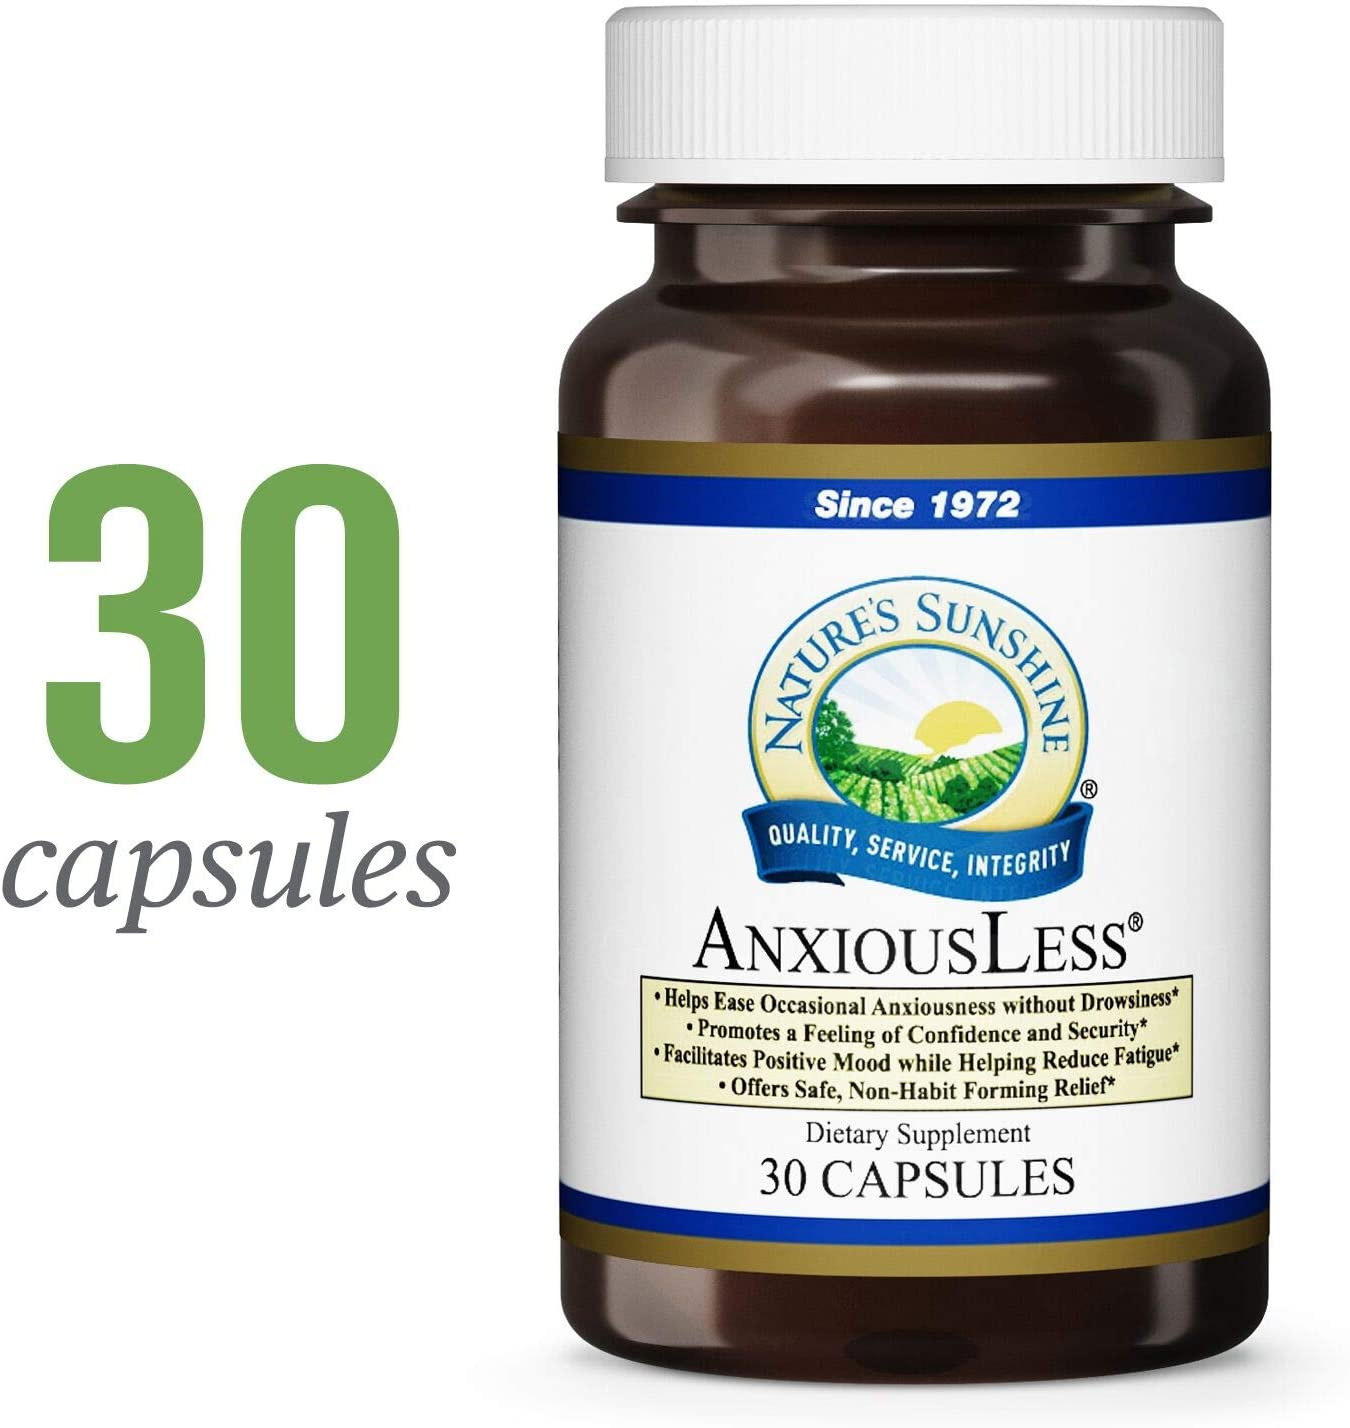 Nature s Sunshine AnxiousLess, 30 Capsules Natural Stress Relief Supplement to Provide Occasional Anxiety Relief and Promote a Natural Calm